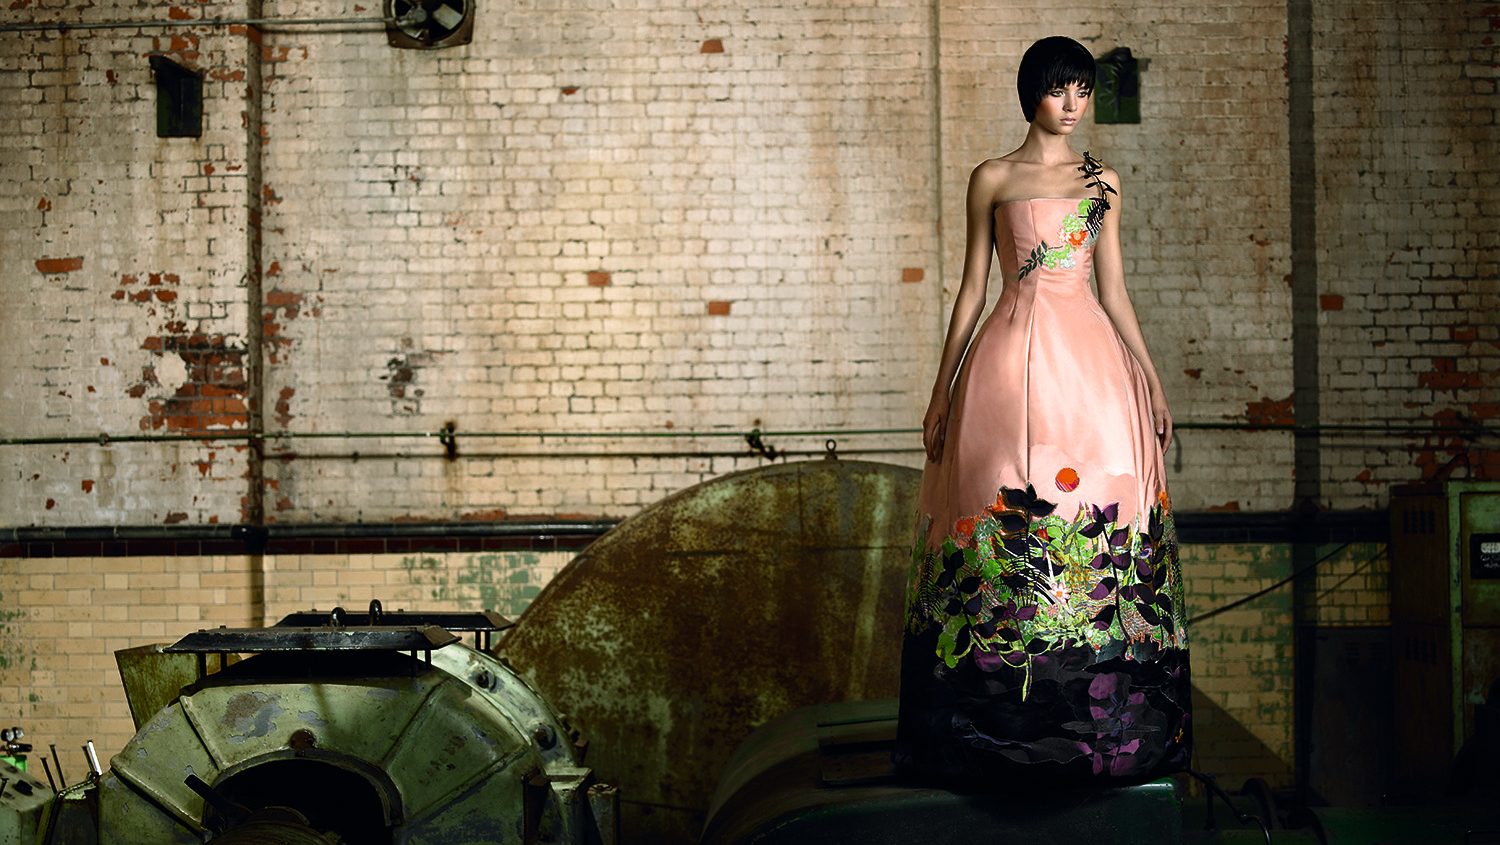 Rousseau dress, Ecoture with Aveda and Deborah Milner